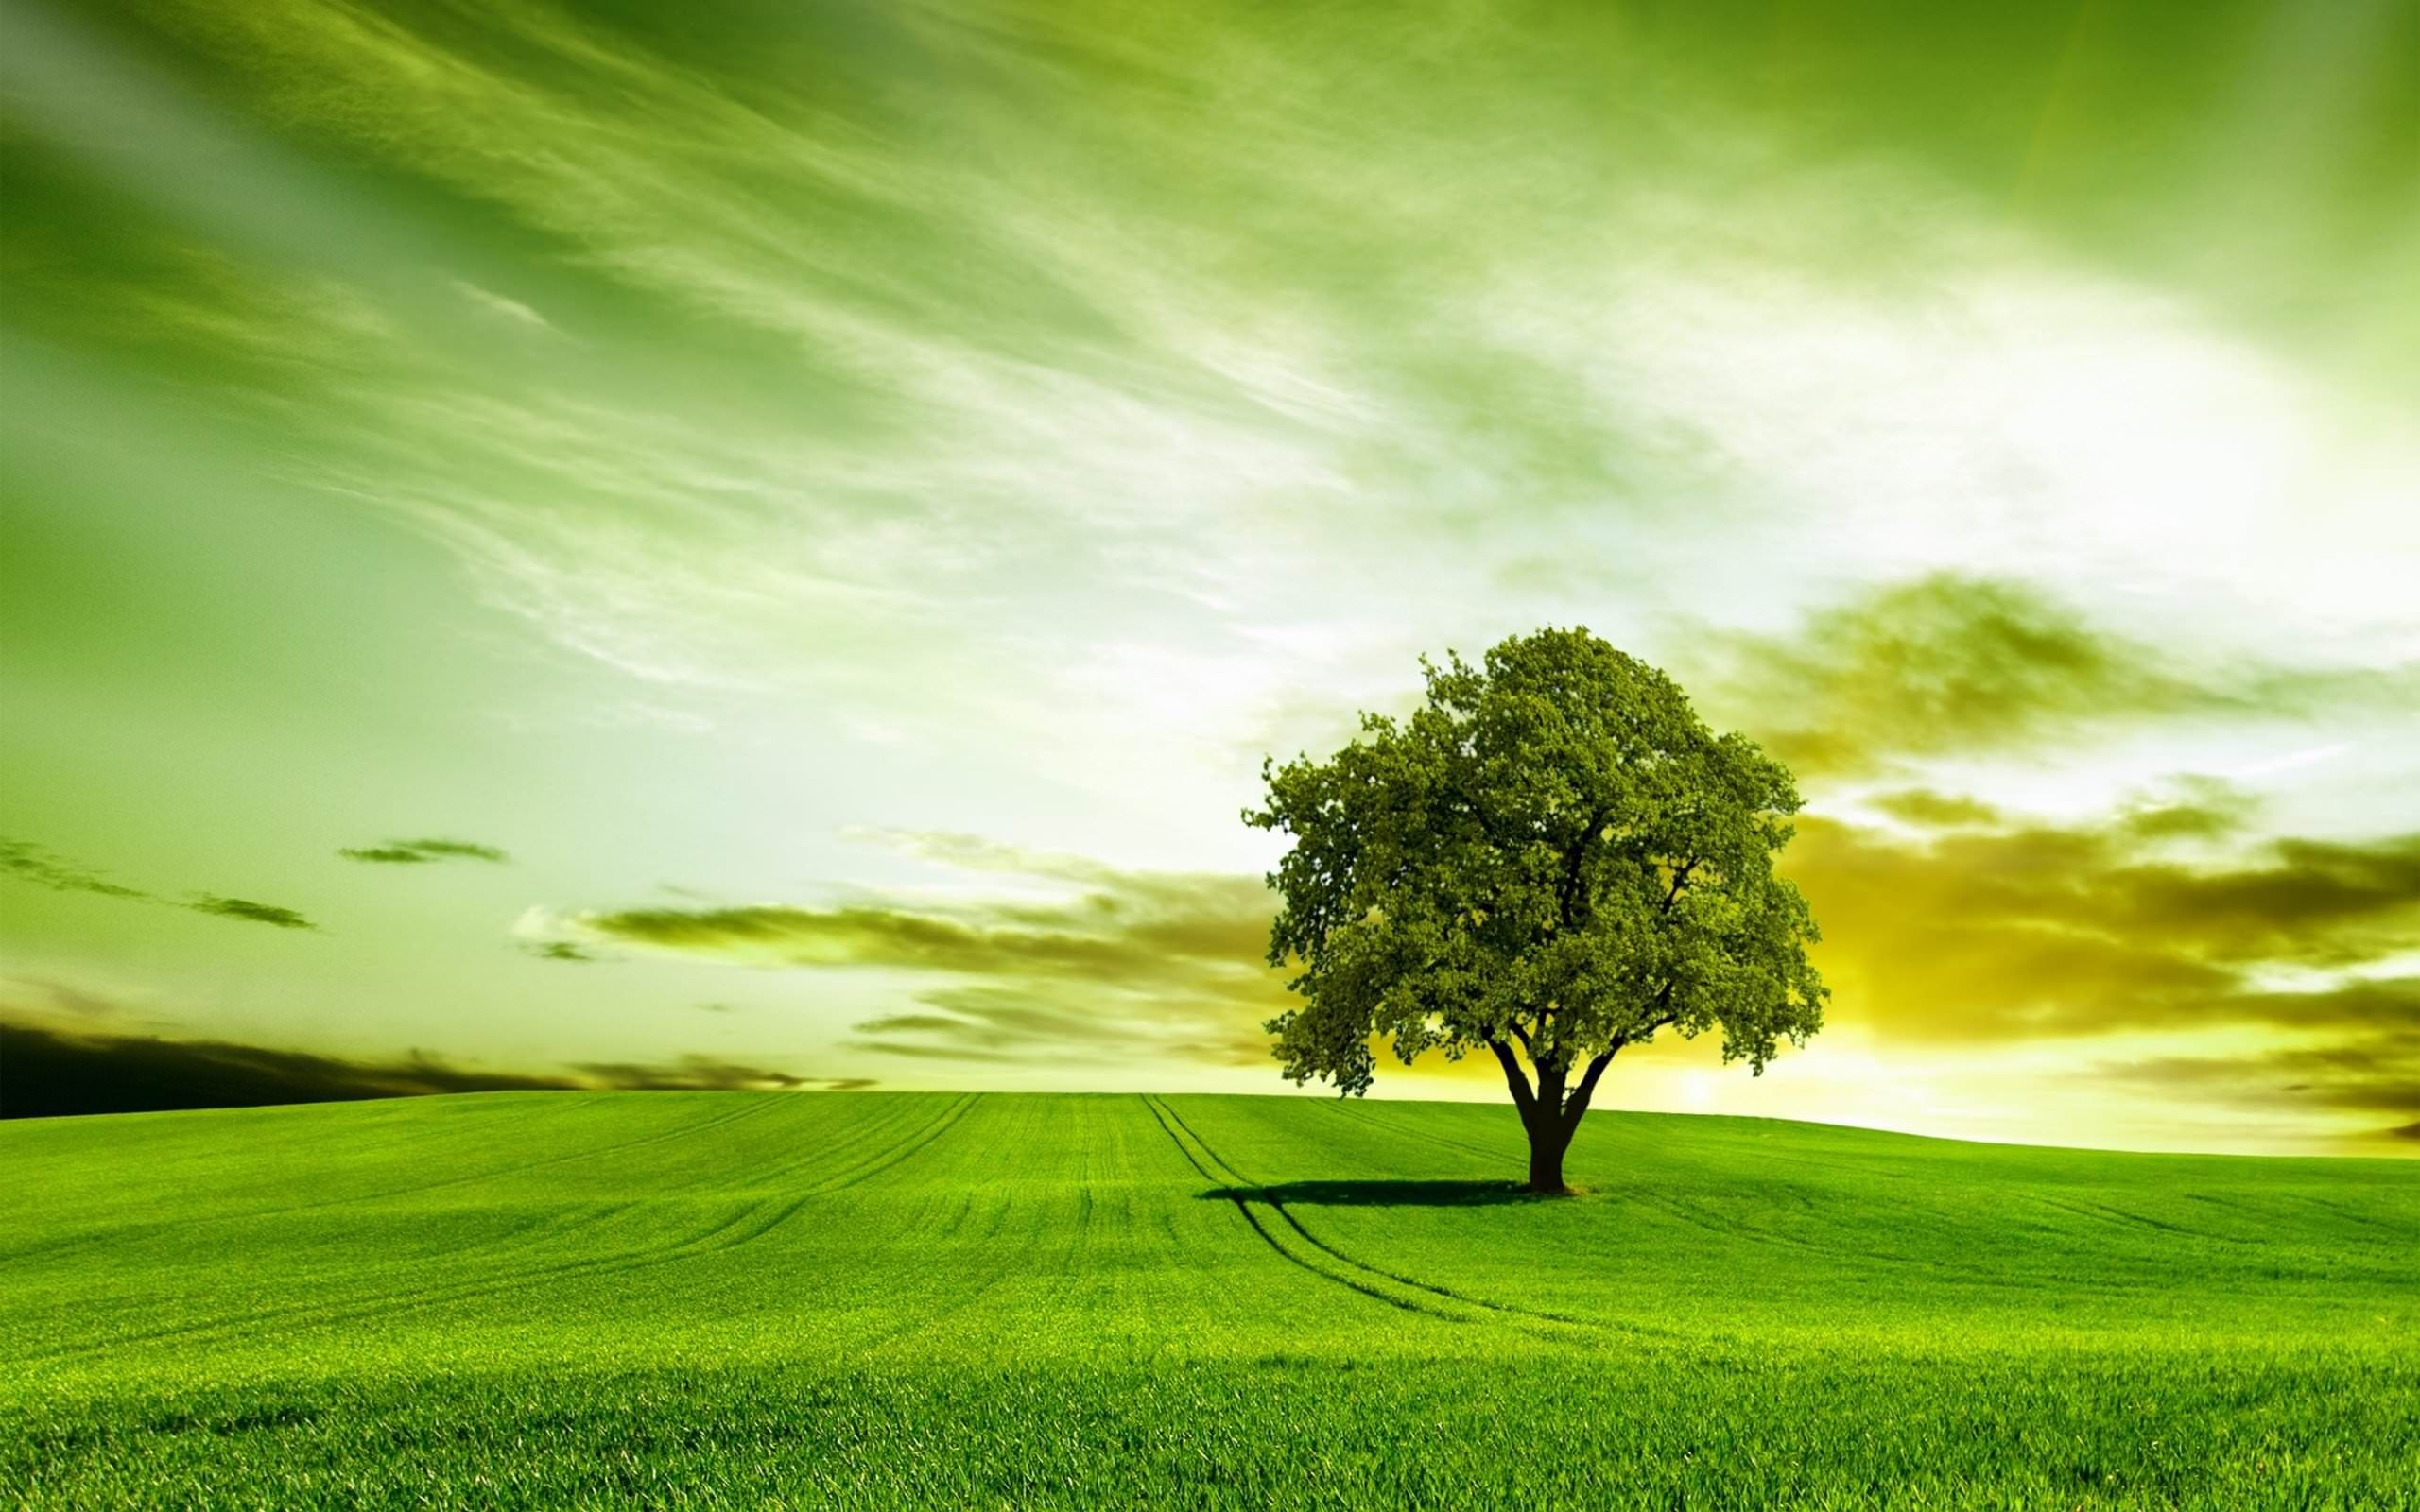 Green Tree Hd Wallpapers Hd Wallpapers Inx Green Nature Wallpaper Tree Hd Wallpaper Amazing Nature Photos